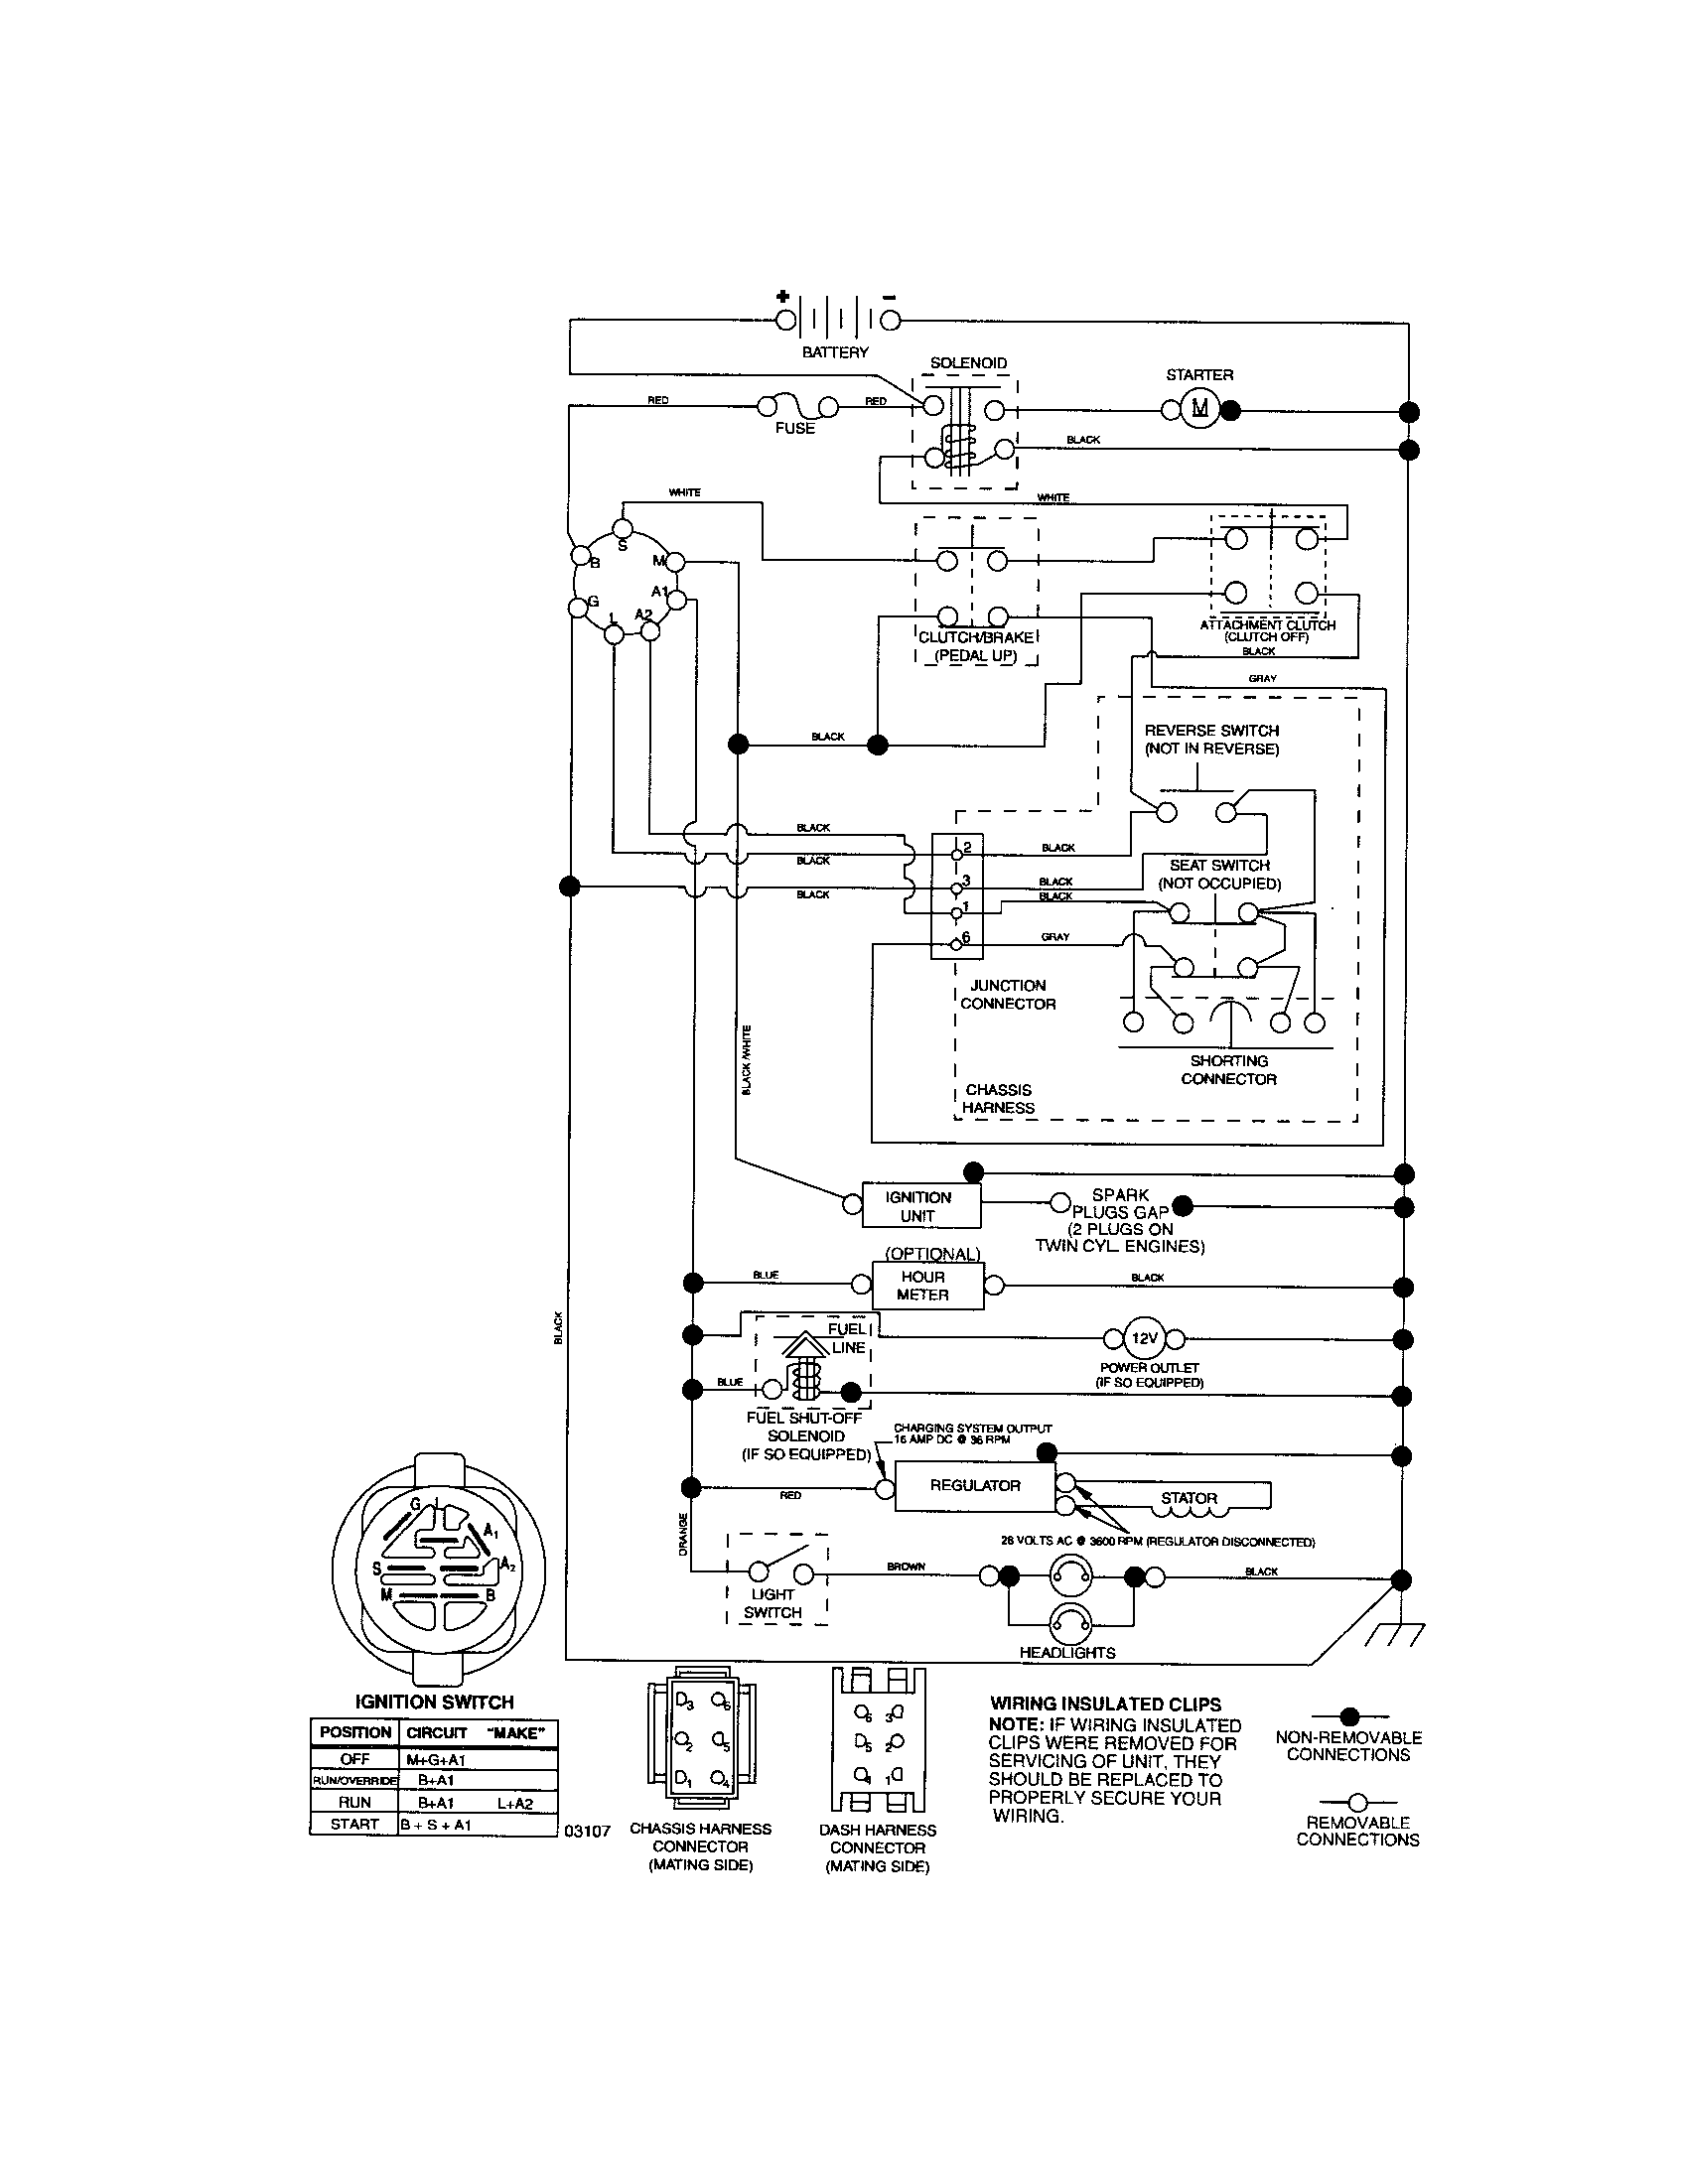 Iplimage in addition Diagram likewise Diagram furthermore Diagram further Diagram. on kohler engine wiring harness diagram